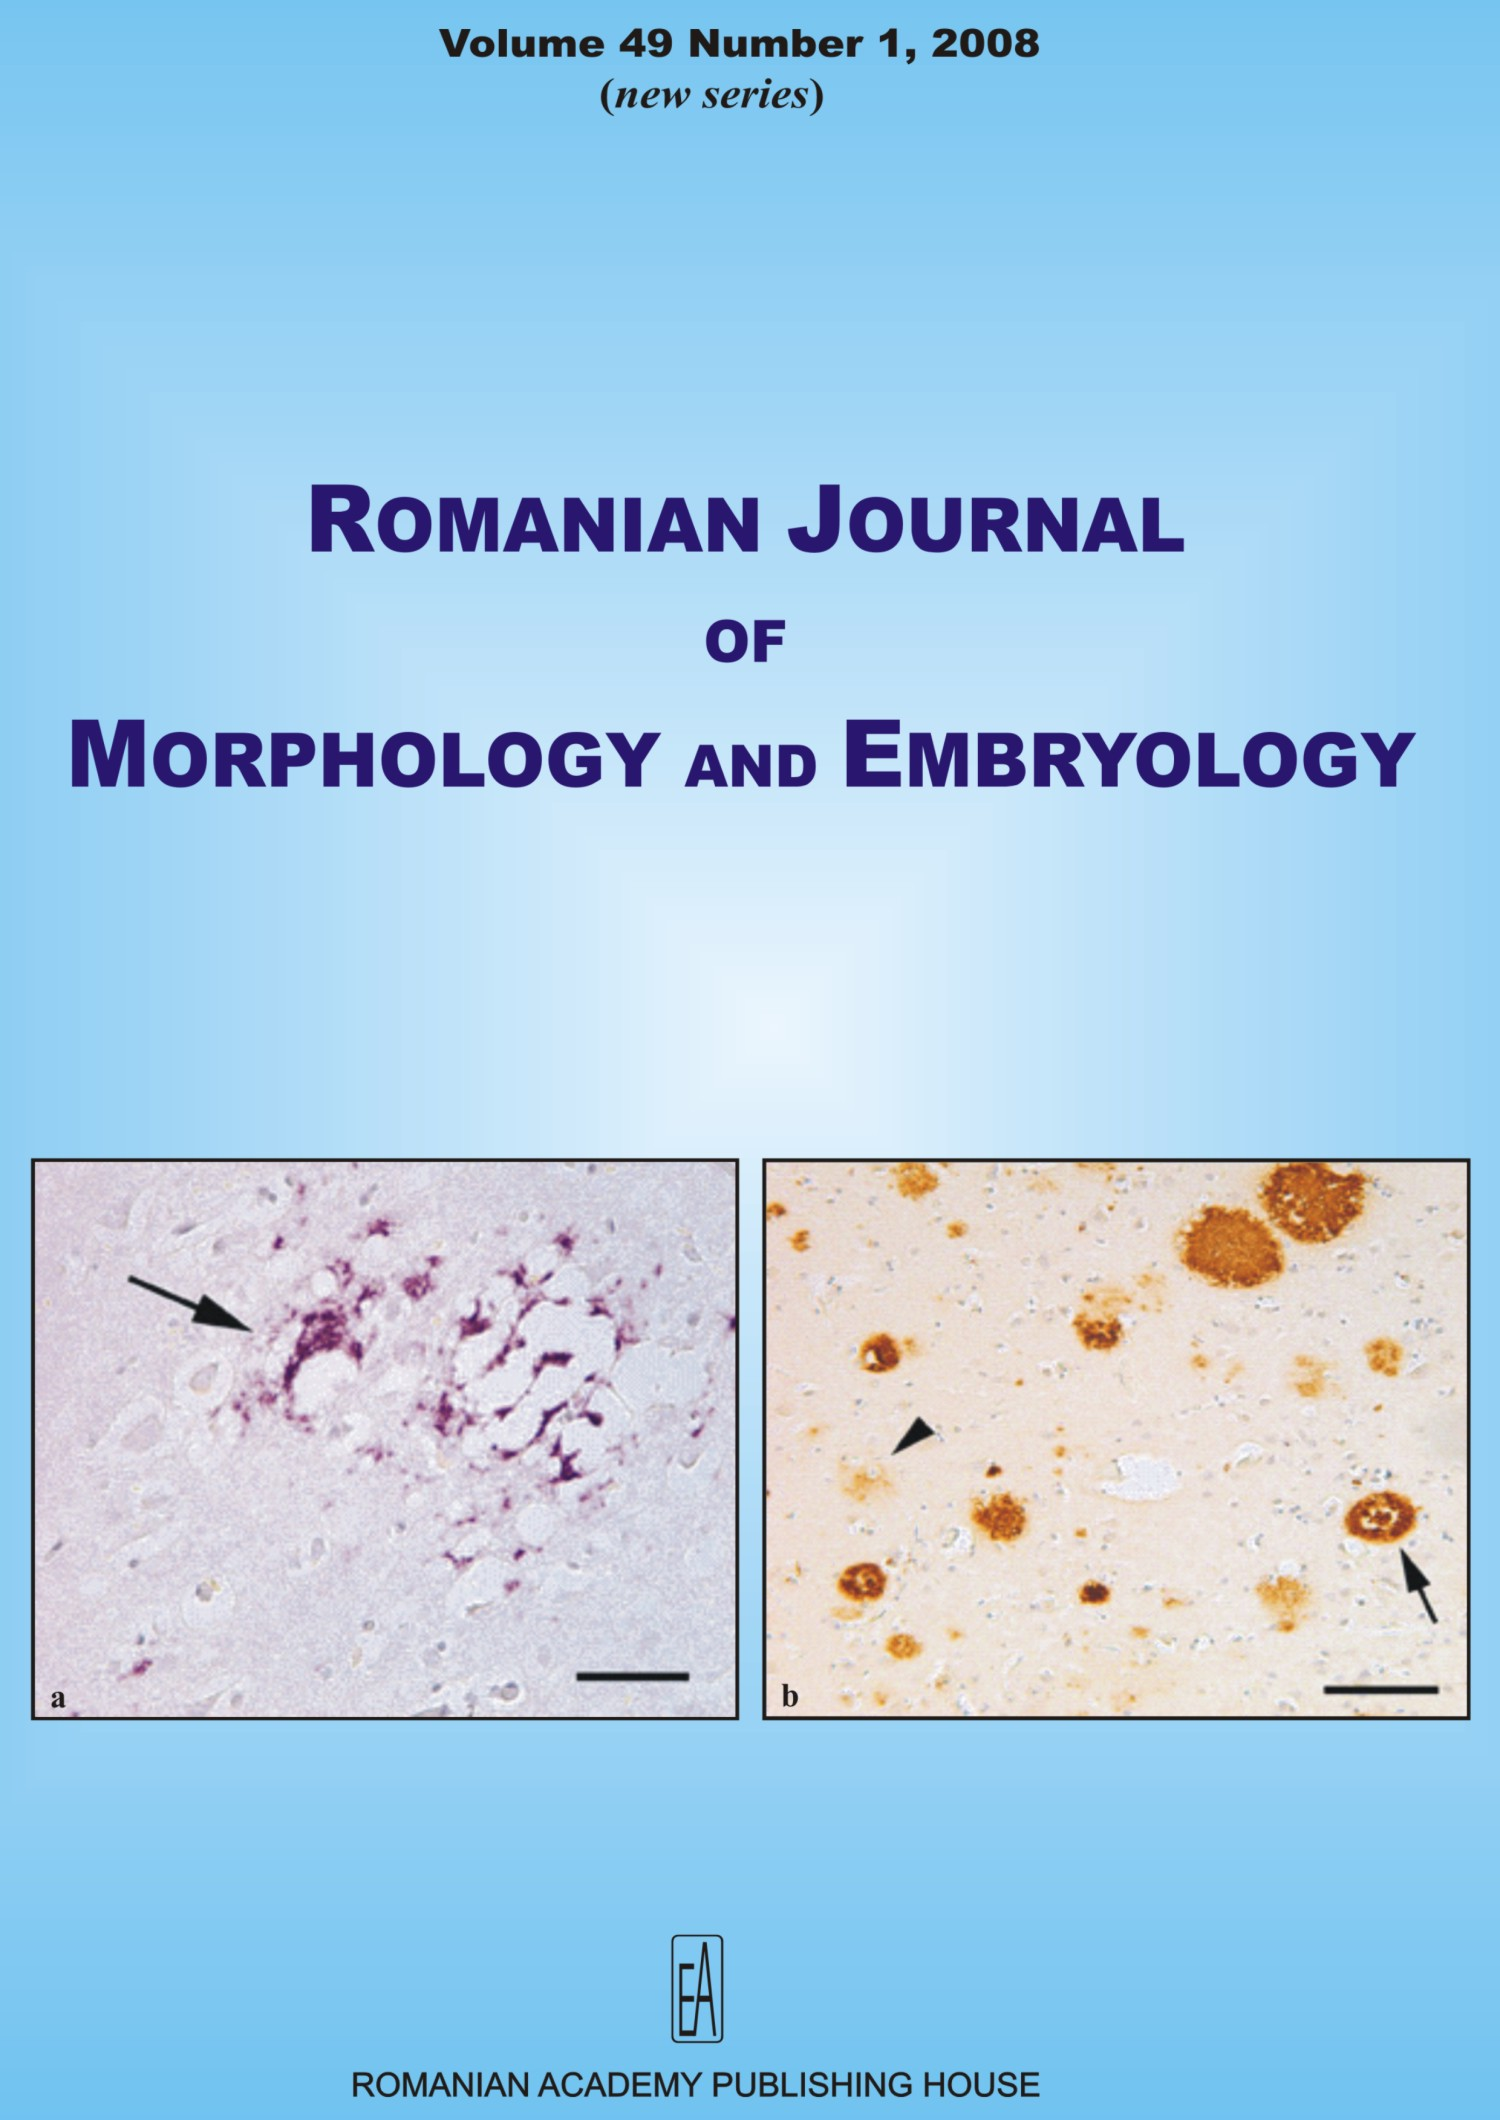 Romanian Journal of Morphology and Embryology, vol. 49 no. 1, 2008